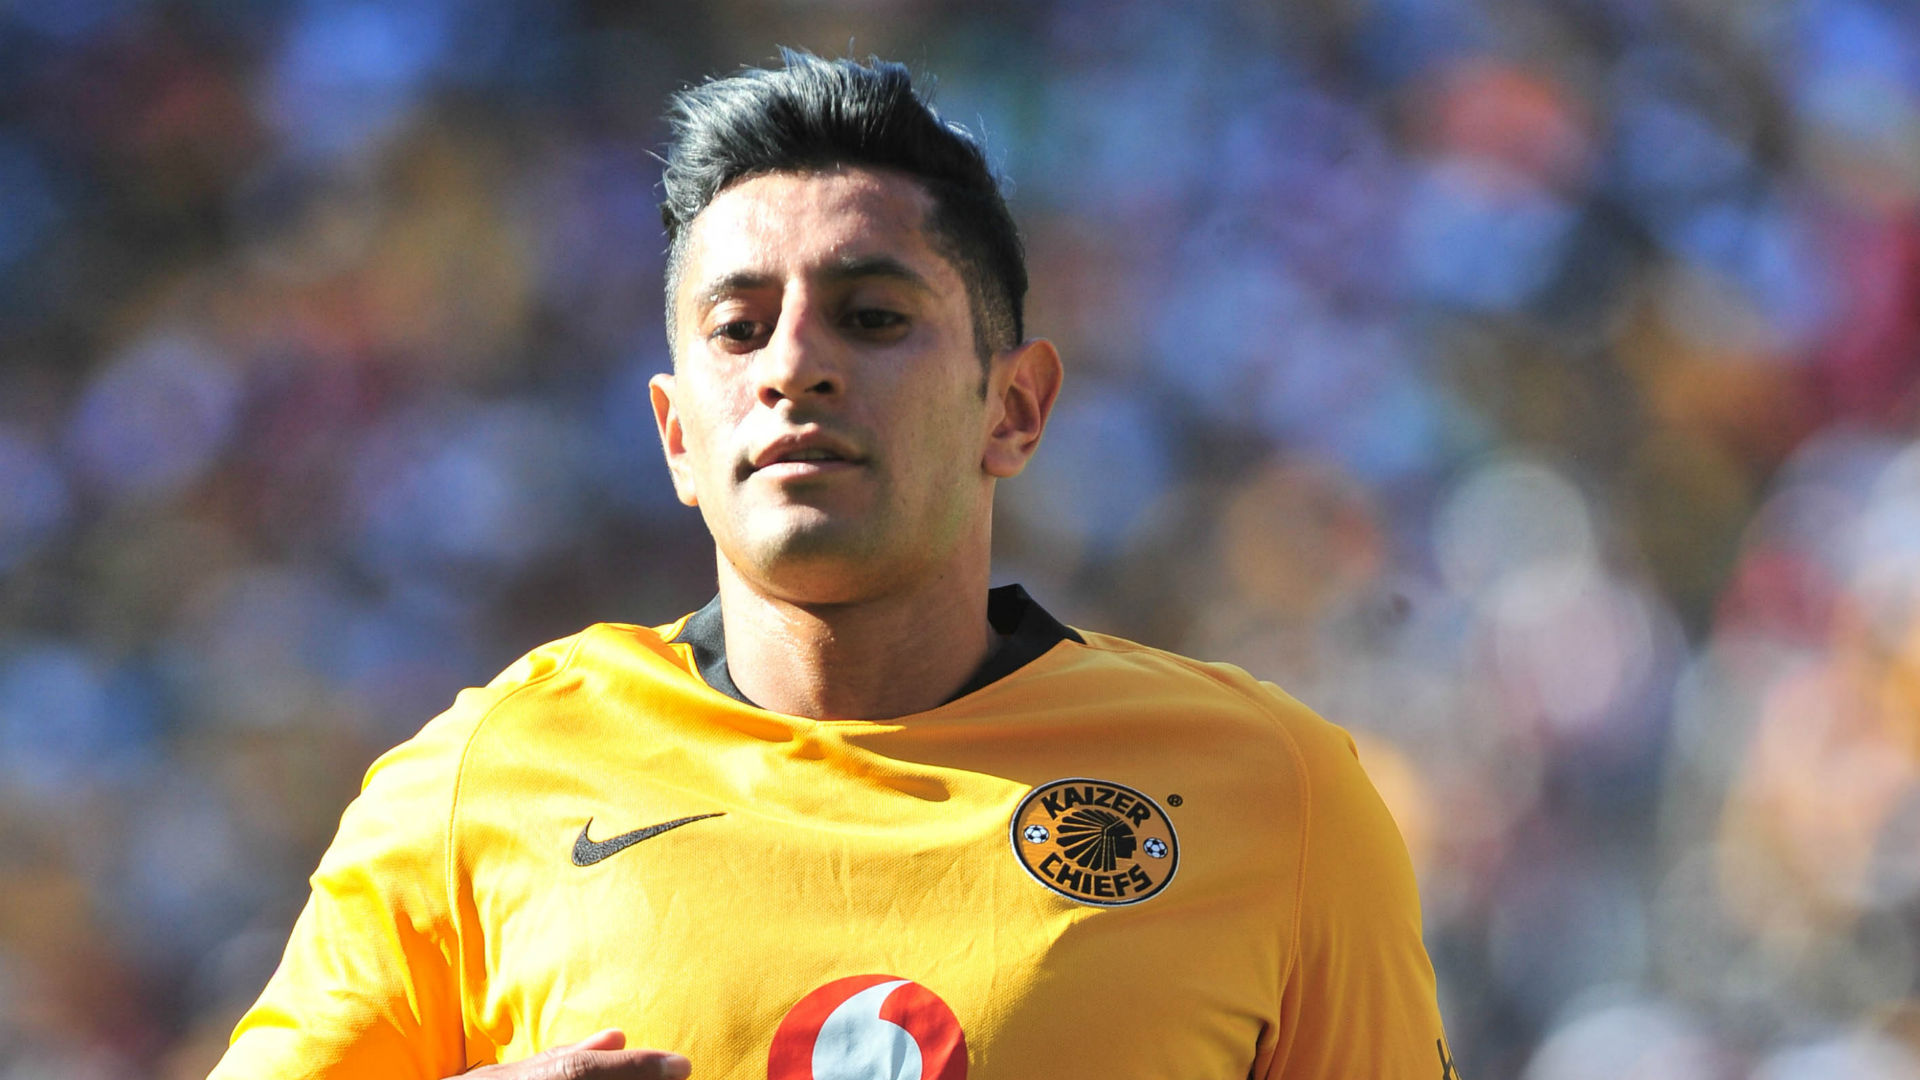 Leonardo Castro, Kaizer Chiefs, October 2018